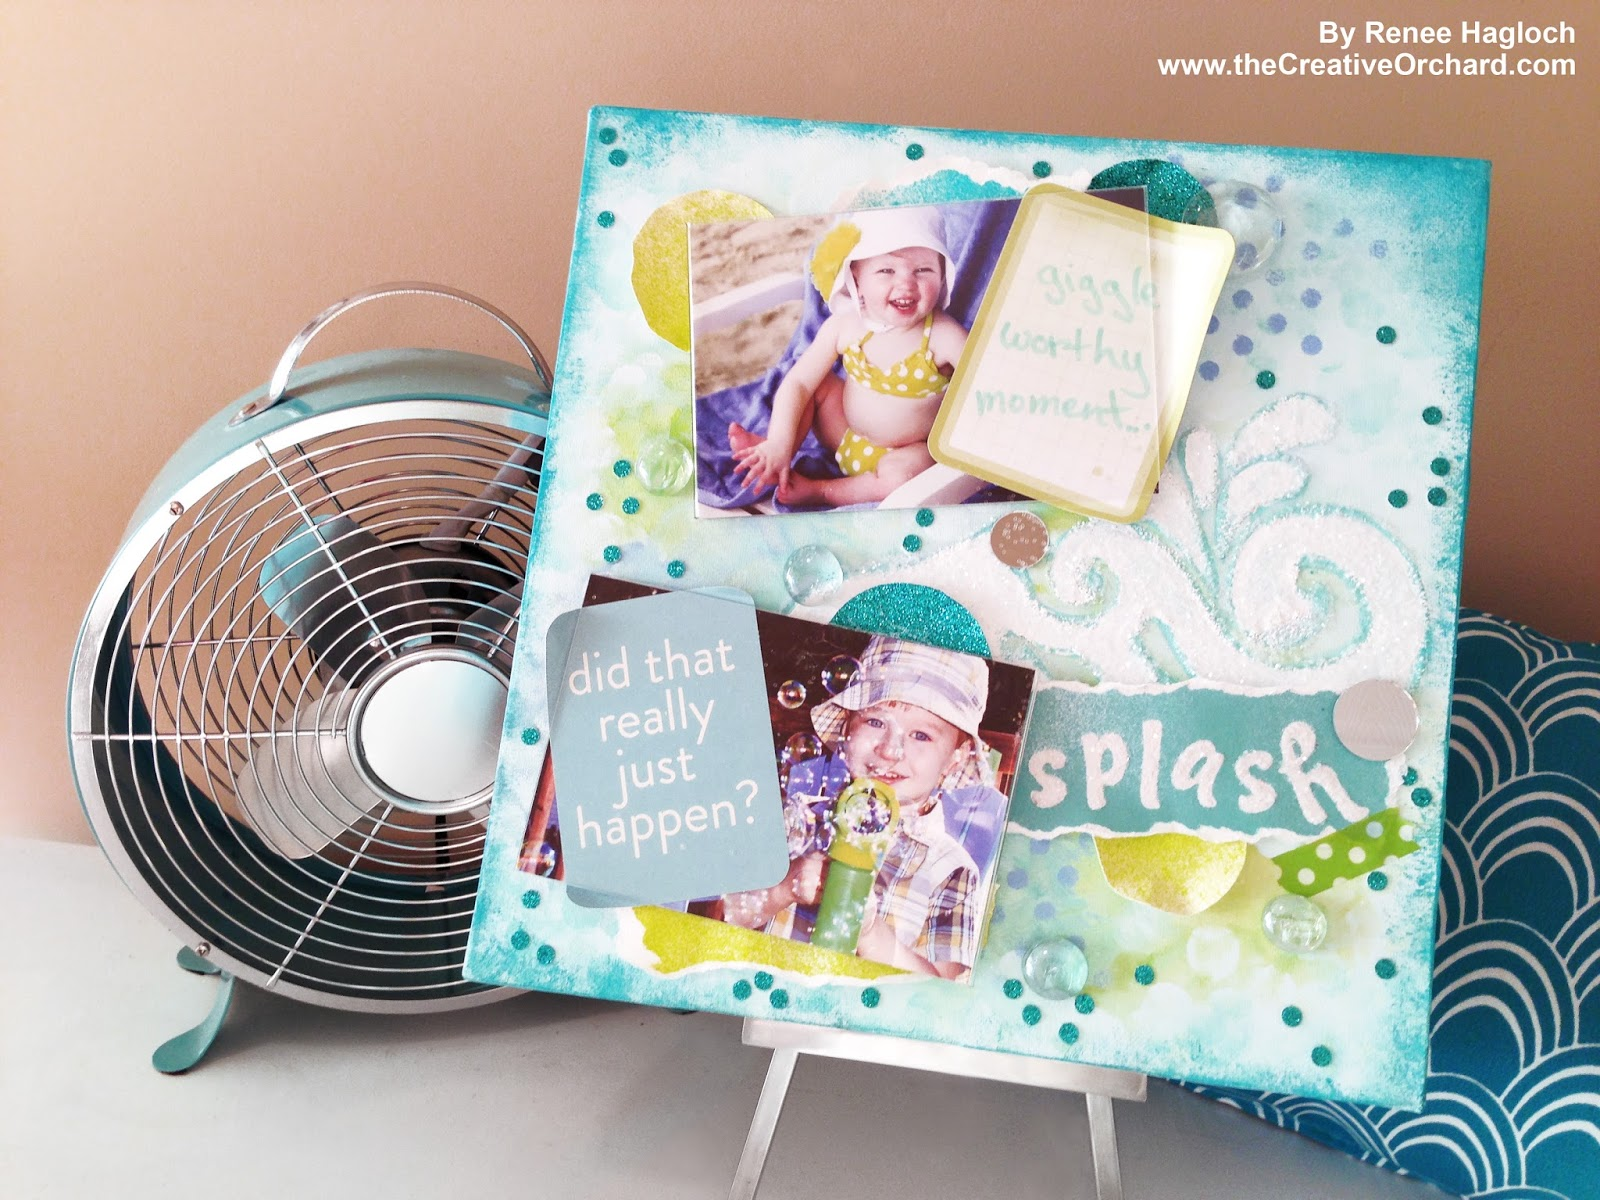 How to scrapbook canvas - If You Plan To Attend Our Creative Workshop You Will Need To Bring Your Own Apron Plus Two Photos That Make You Think Of The Theme Splash A Moment